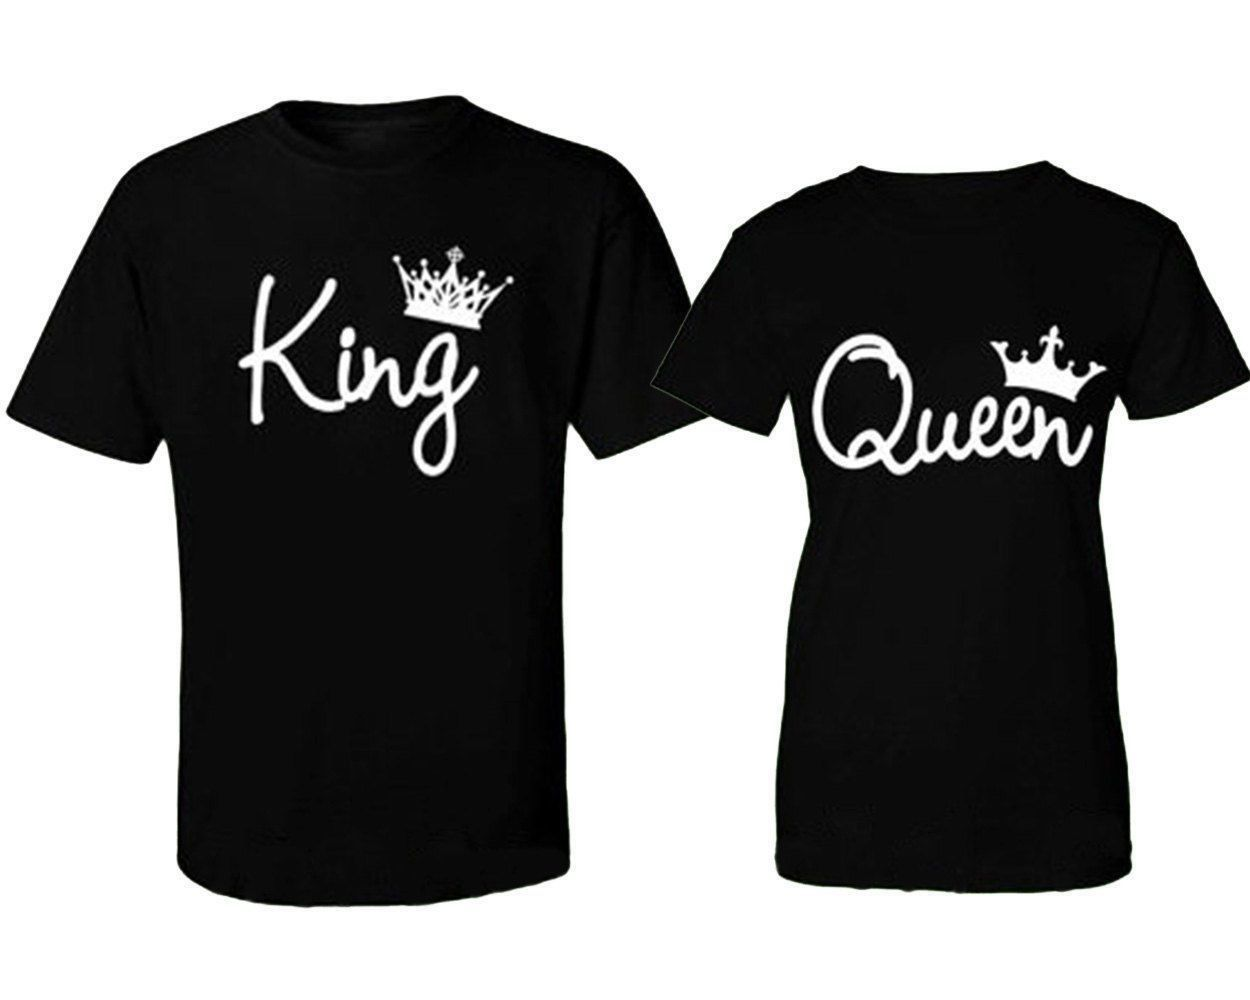 bf3f8b55 US STOCK Couple T-Shirt King and Queen - Love Matching Shirts Couple Tee  Tops WR